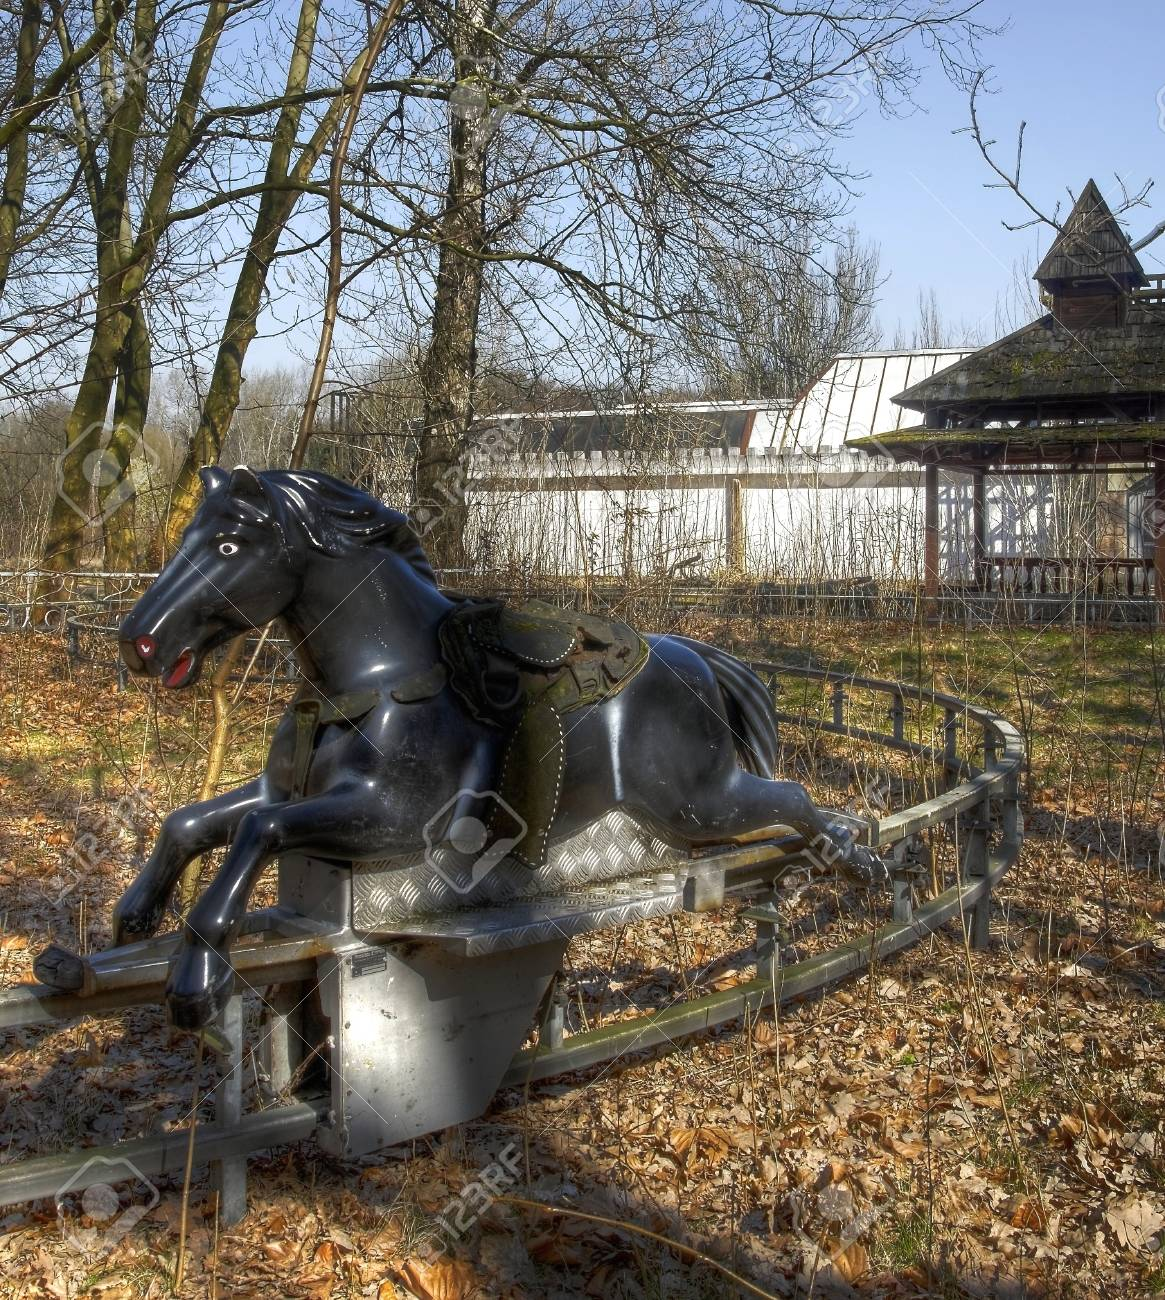 Old Abandoned Horse From A Carousel Stock Photo Picture And Royalty Free Image Image 32044419